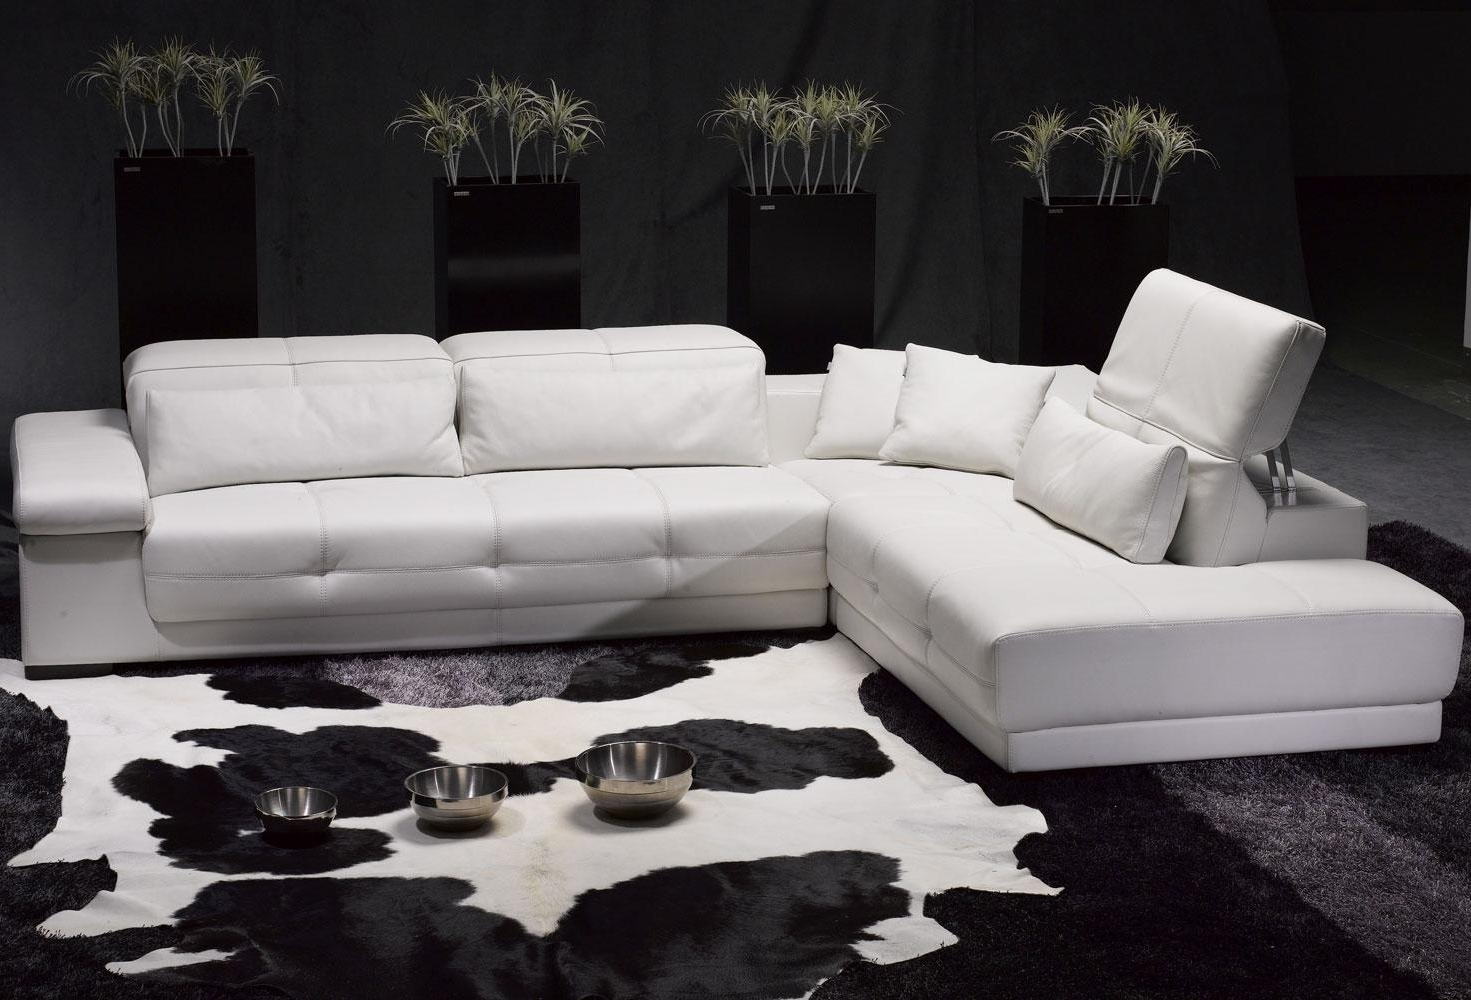 Jenisemay Throughout White Sectional Sofas (View 3 of 20)